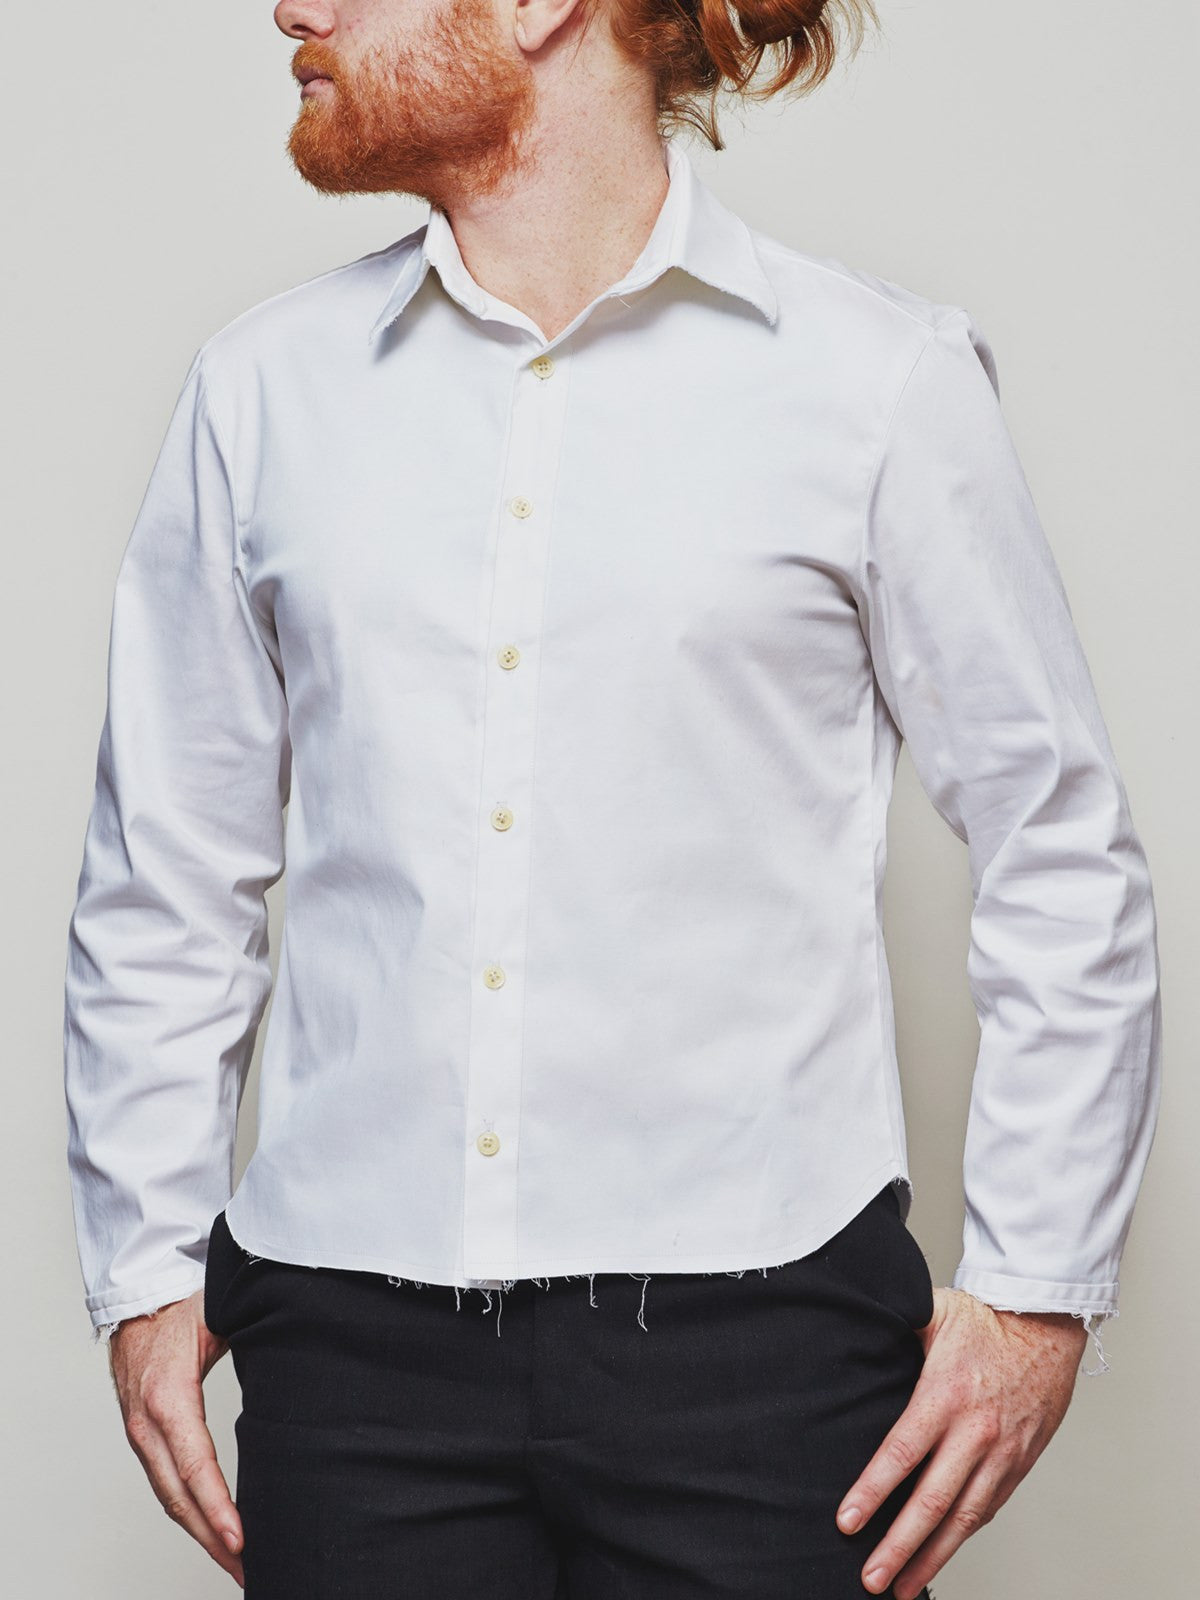 The Tailored Shirt